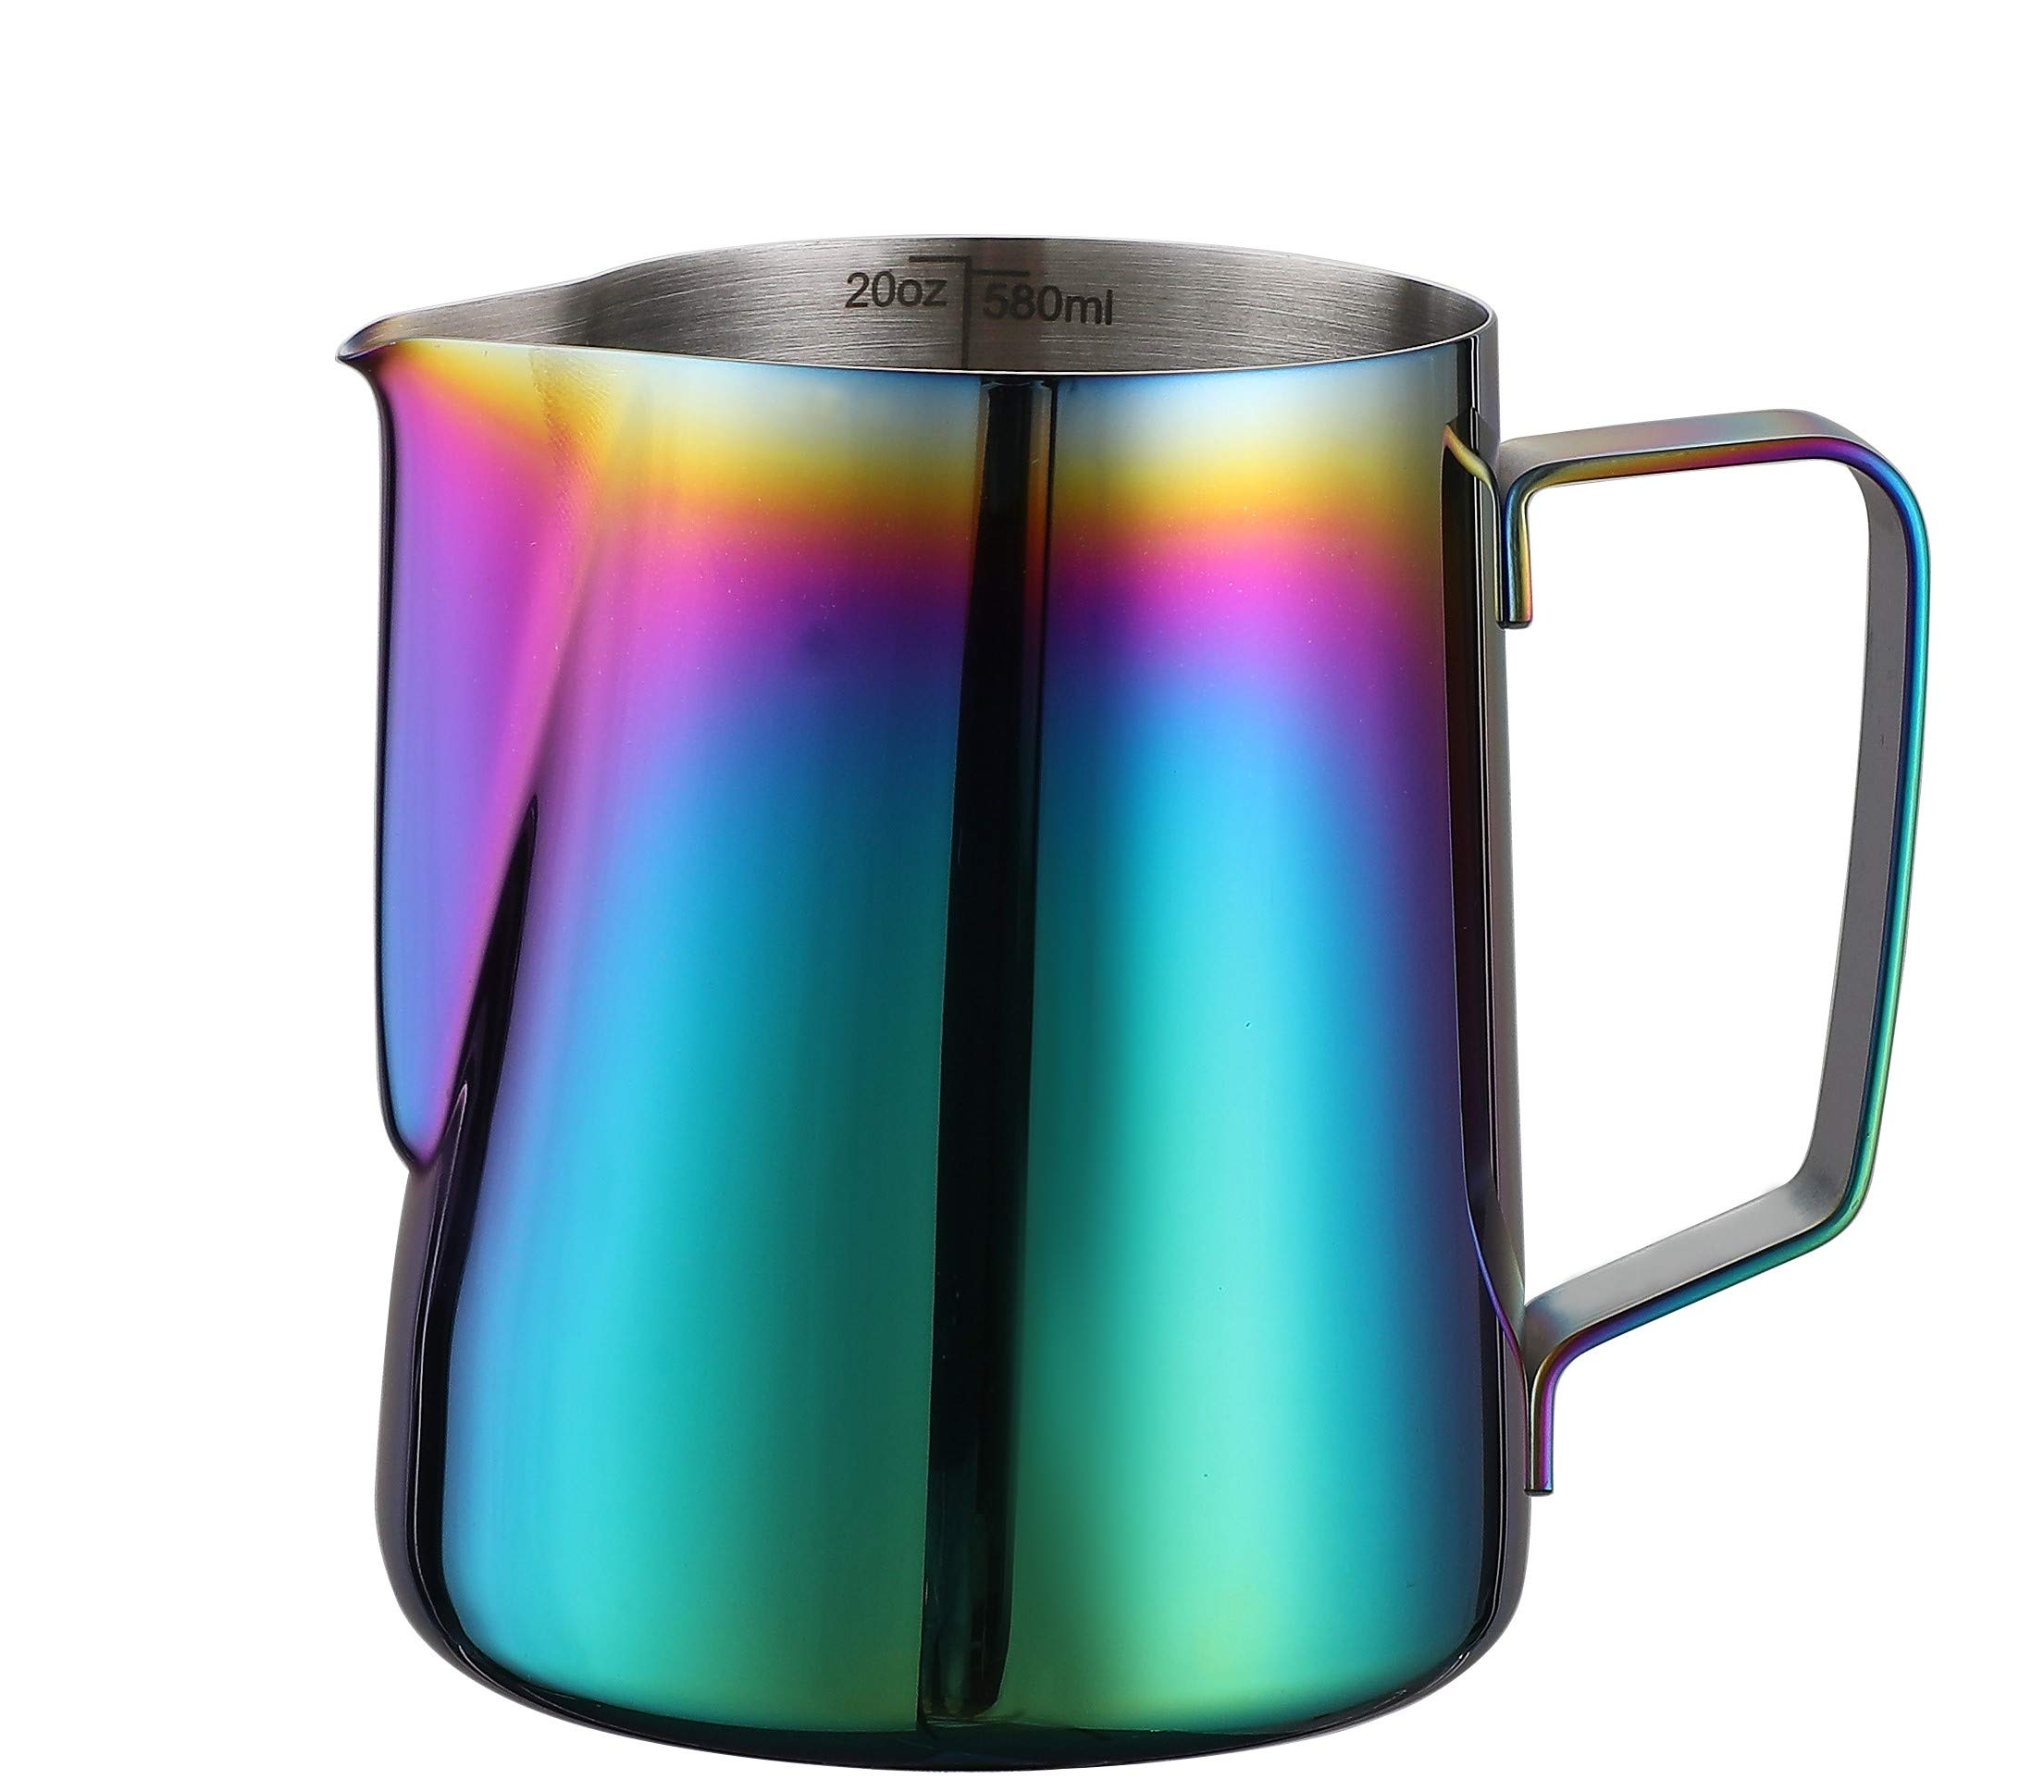 Joytata Milk Frothing Pitcher 20oz Stainless Steel Cup Perfect for Latte Art,Espresso Maker,Cappuccino Maker-18/8 Stainless Steel Milk Frother Pitcher Steaming Pitcher Rainbow Color 600ml by Joytata